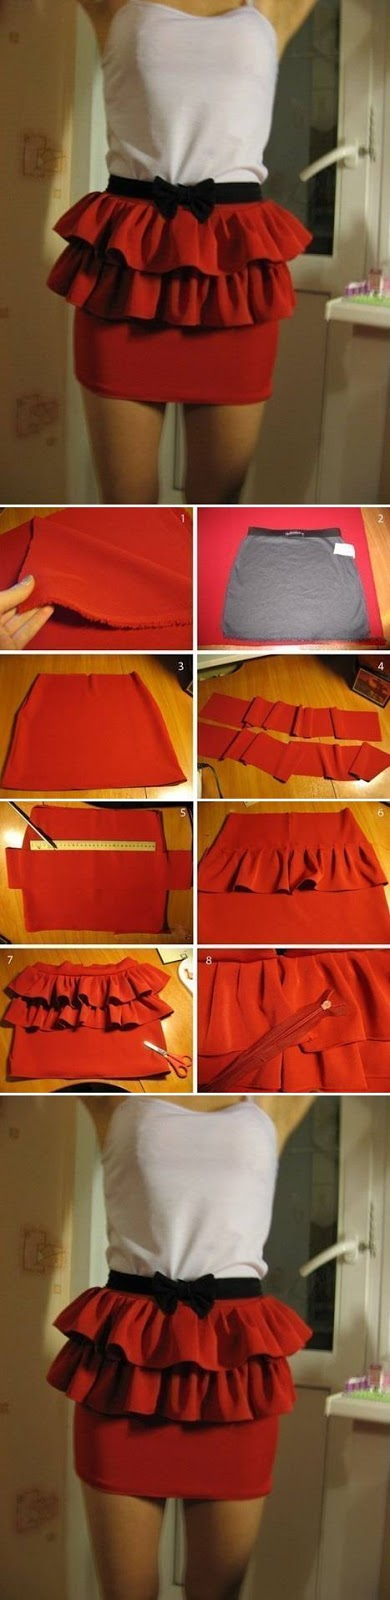 Easy Skirt Modification